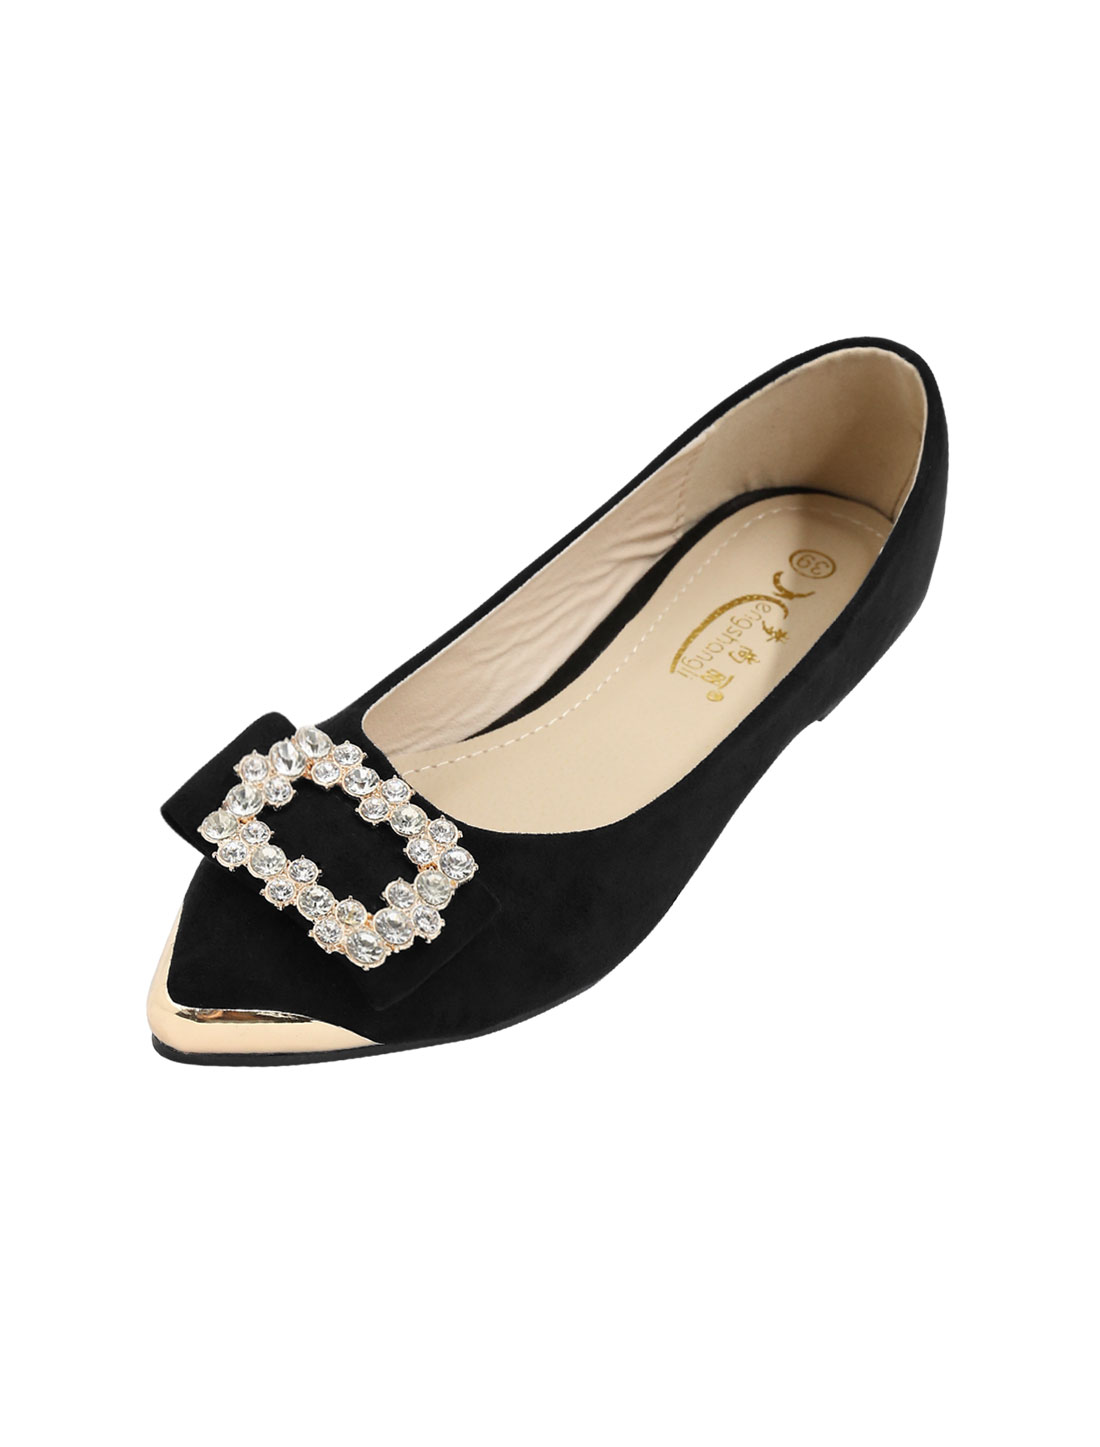 Ladies Metallic Pointed Toe Rhinestone Embellished Flat Shoes Black US 8